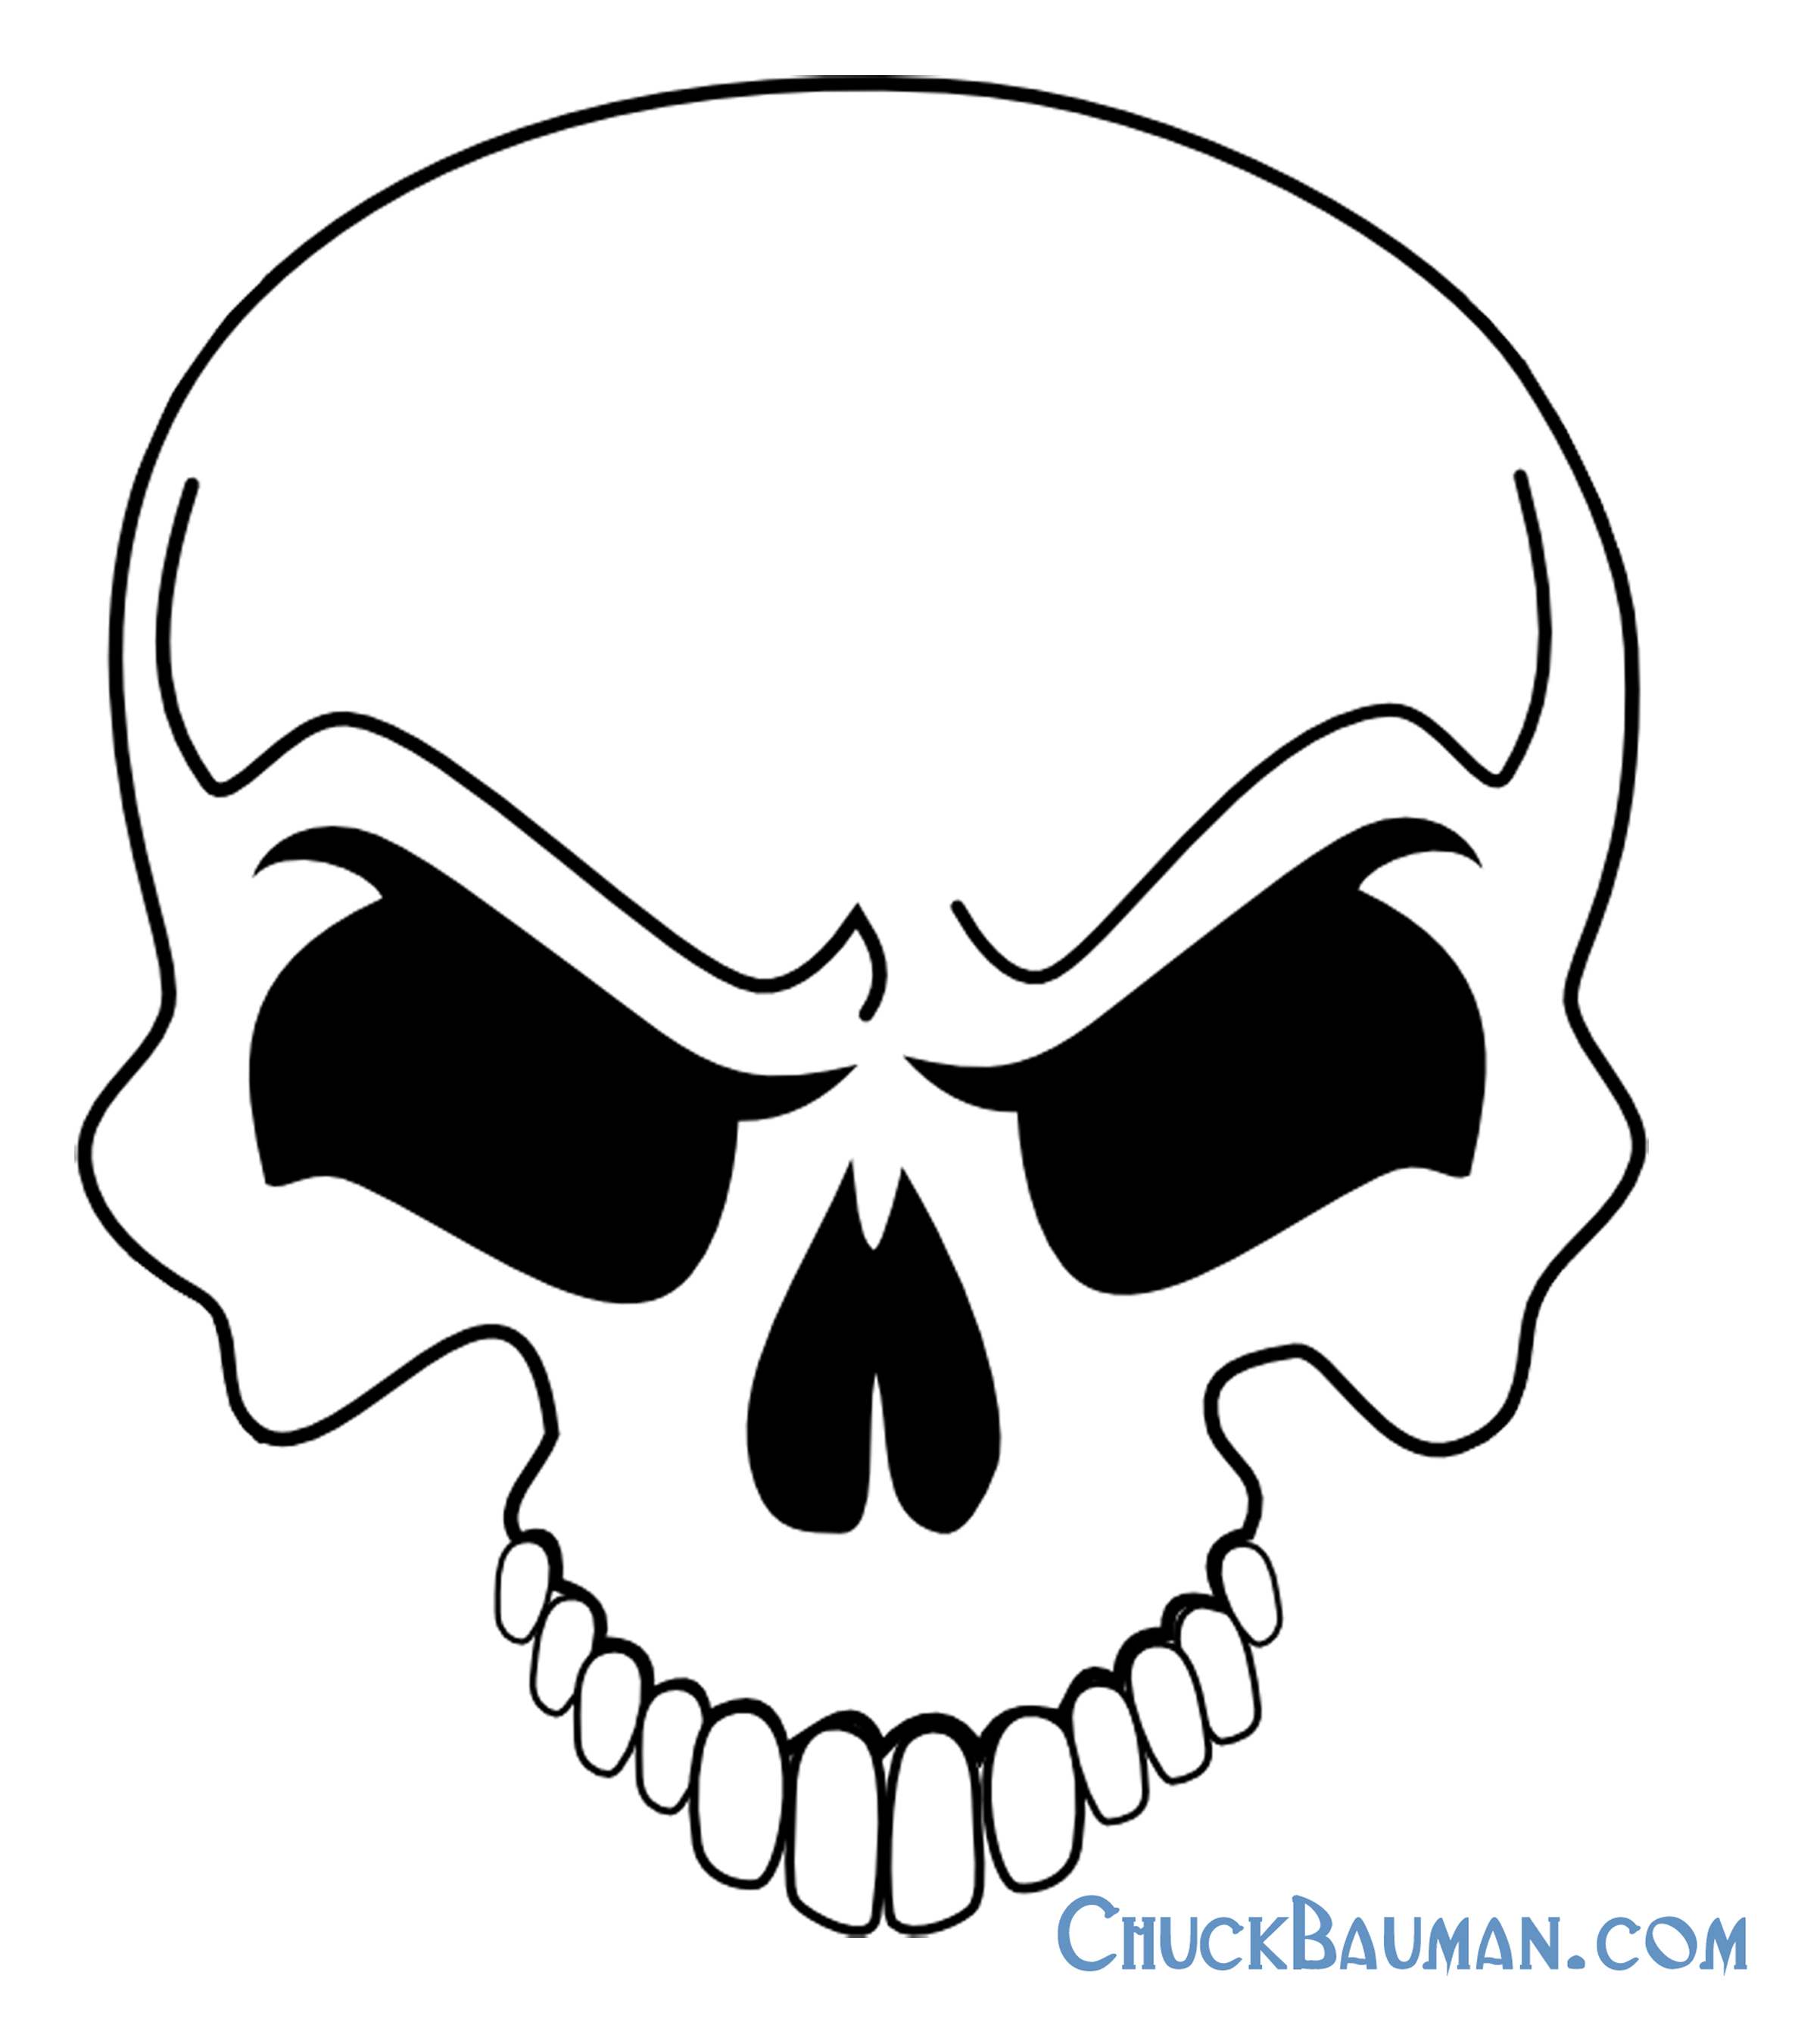 8 Images of Free Printable Skull Templates